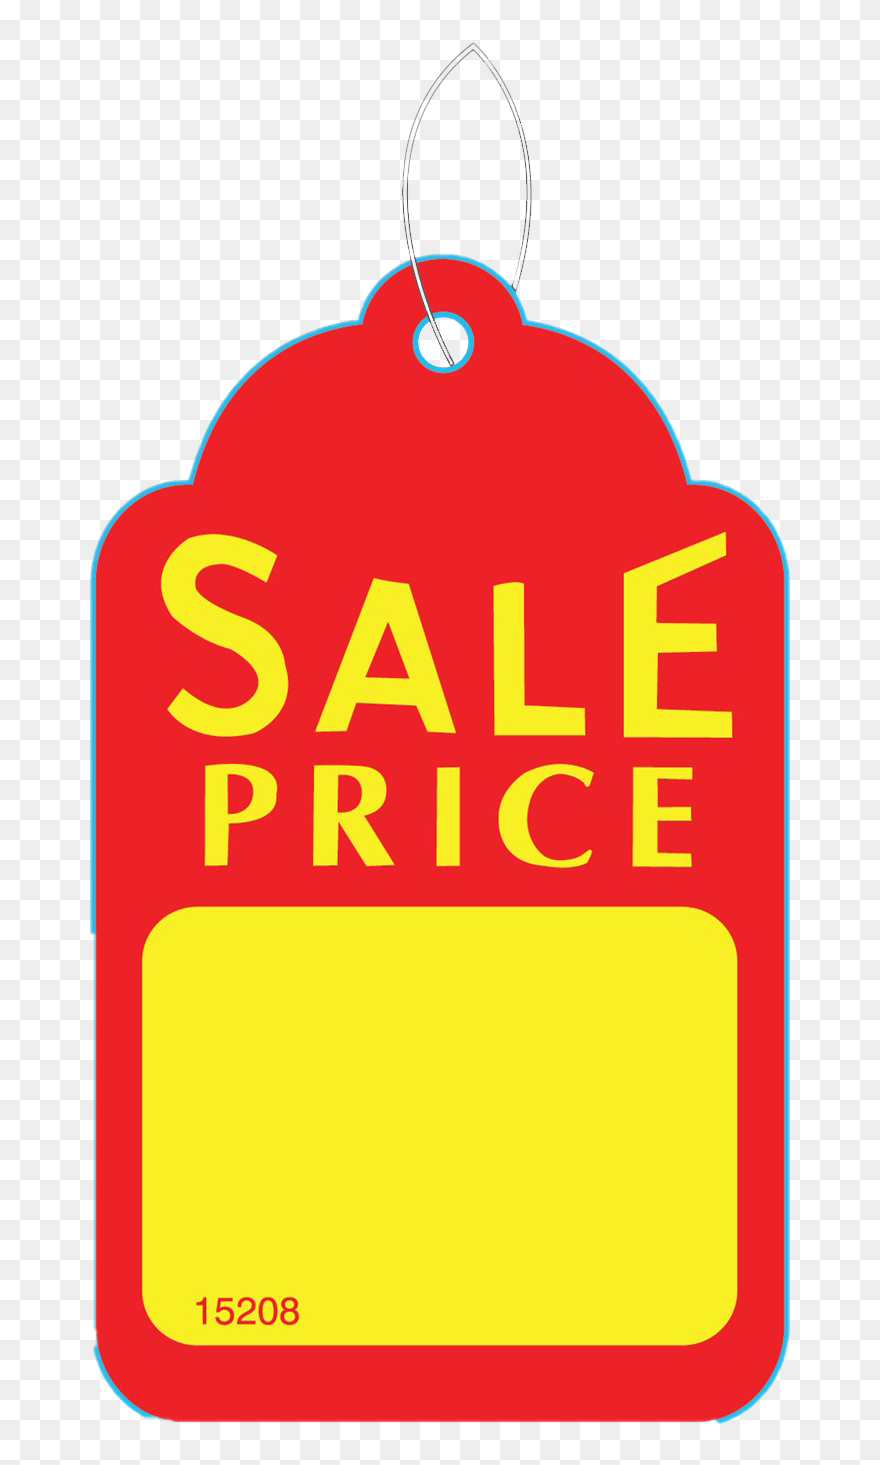 Price tag stock. Clip art black and